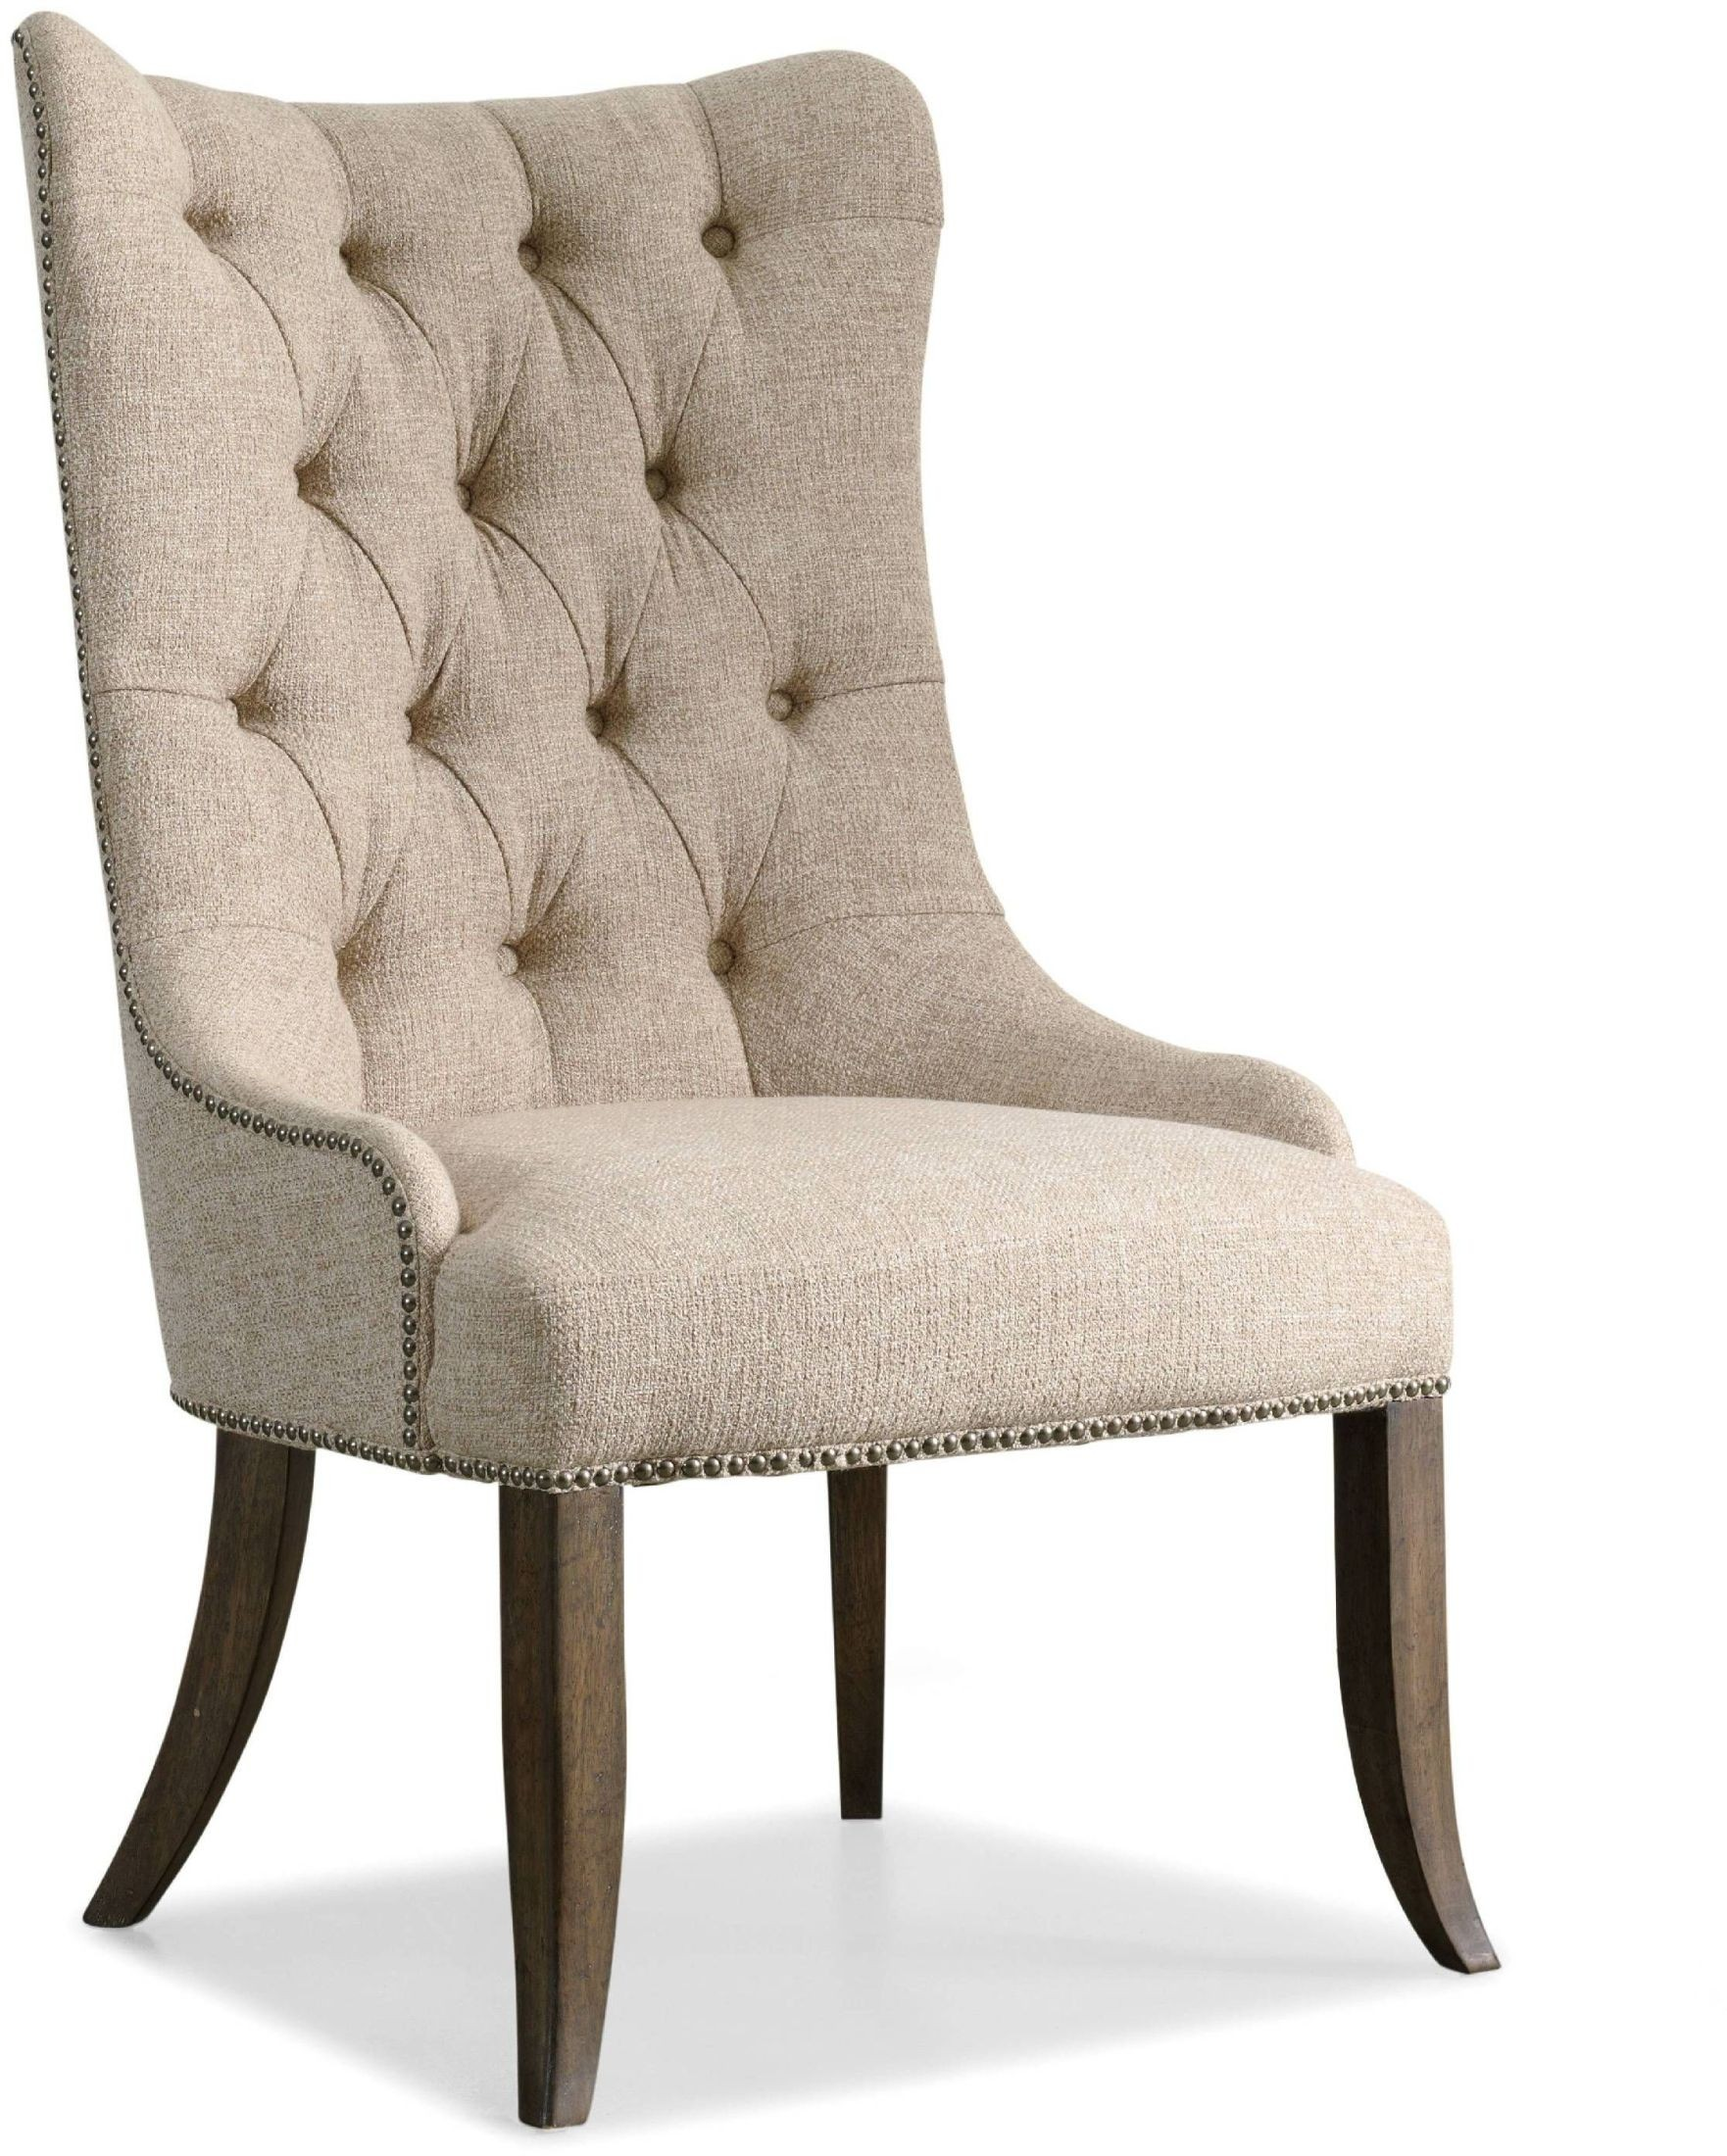 Rhapsody Beige Tufted Dining Chair Set Of 2 From Hooker